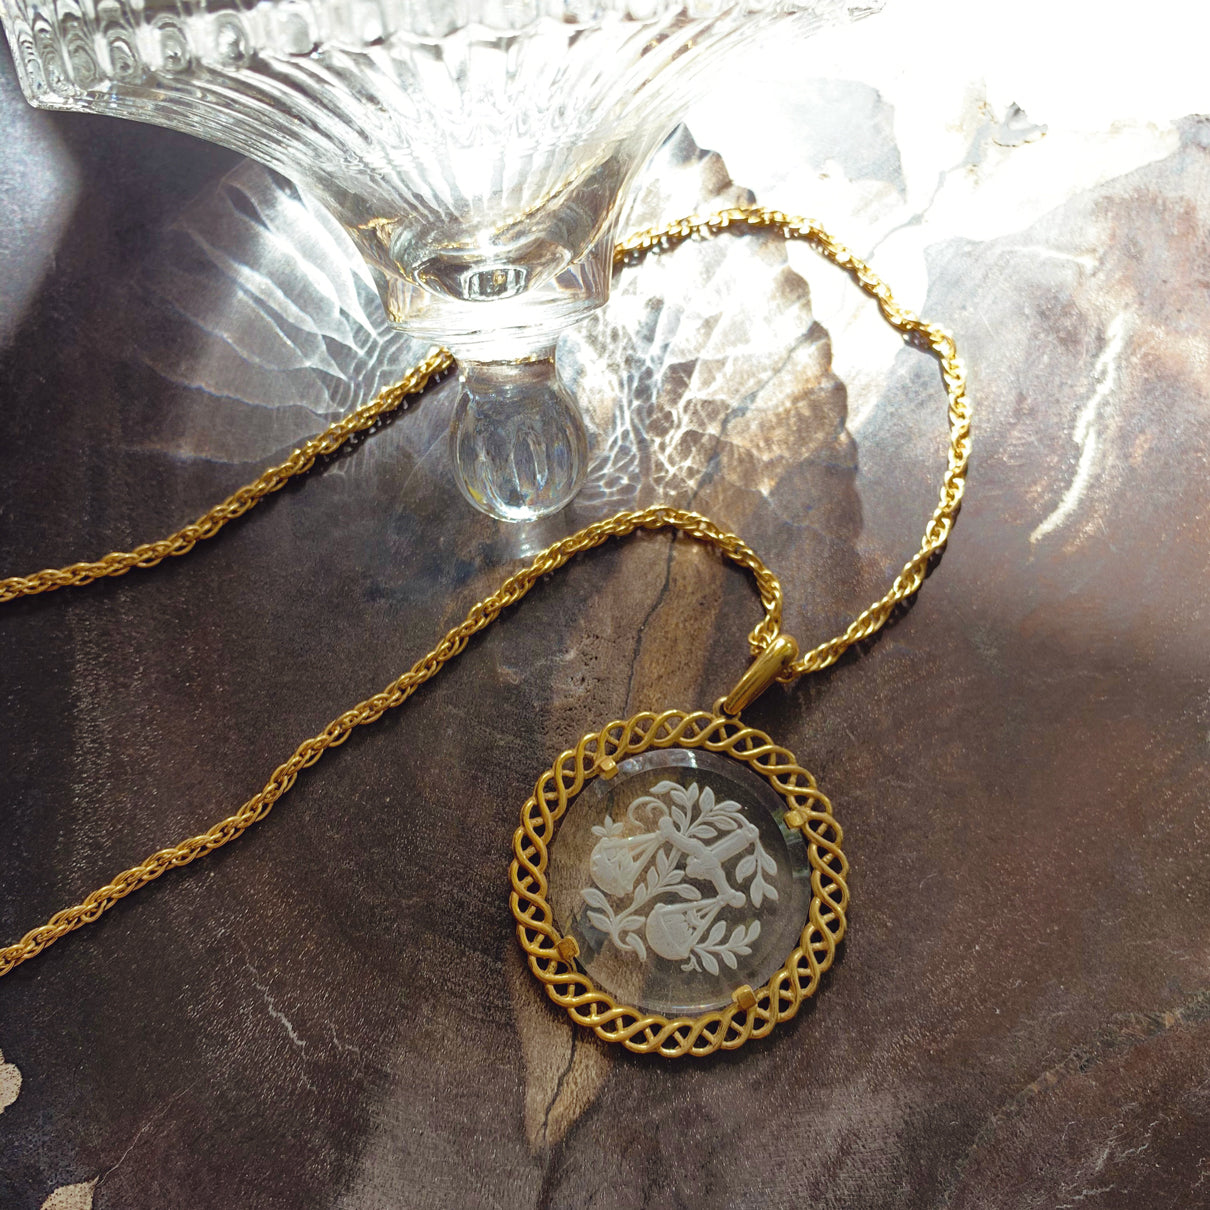 Vintage 50s Libra etched glass Necklace